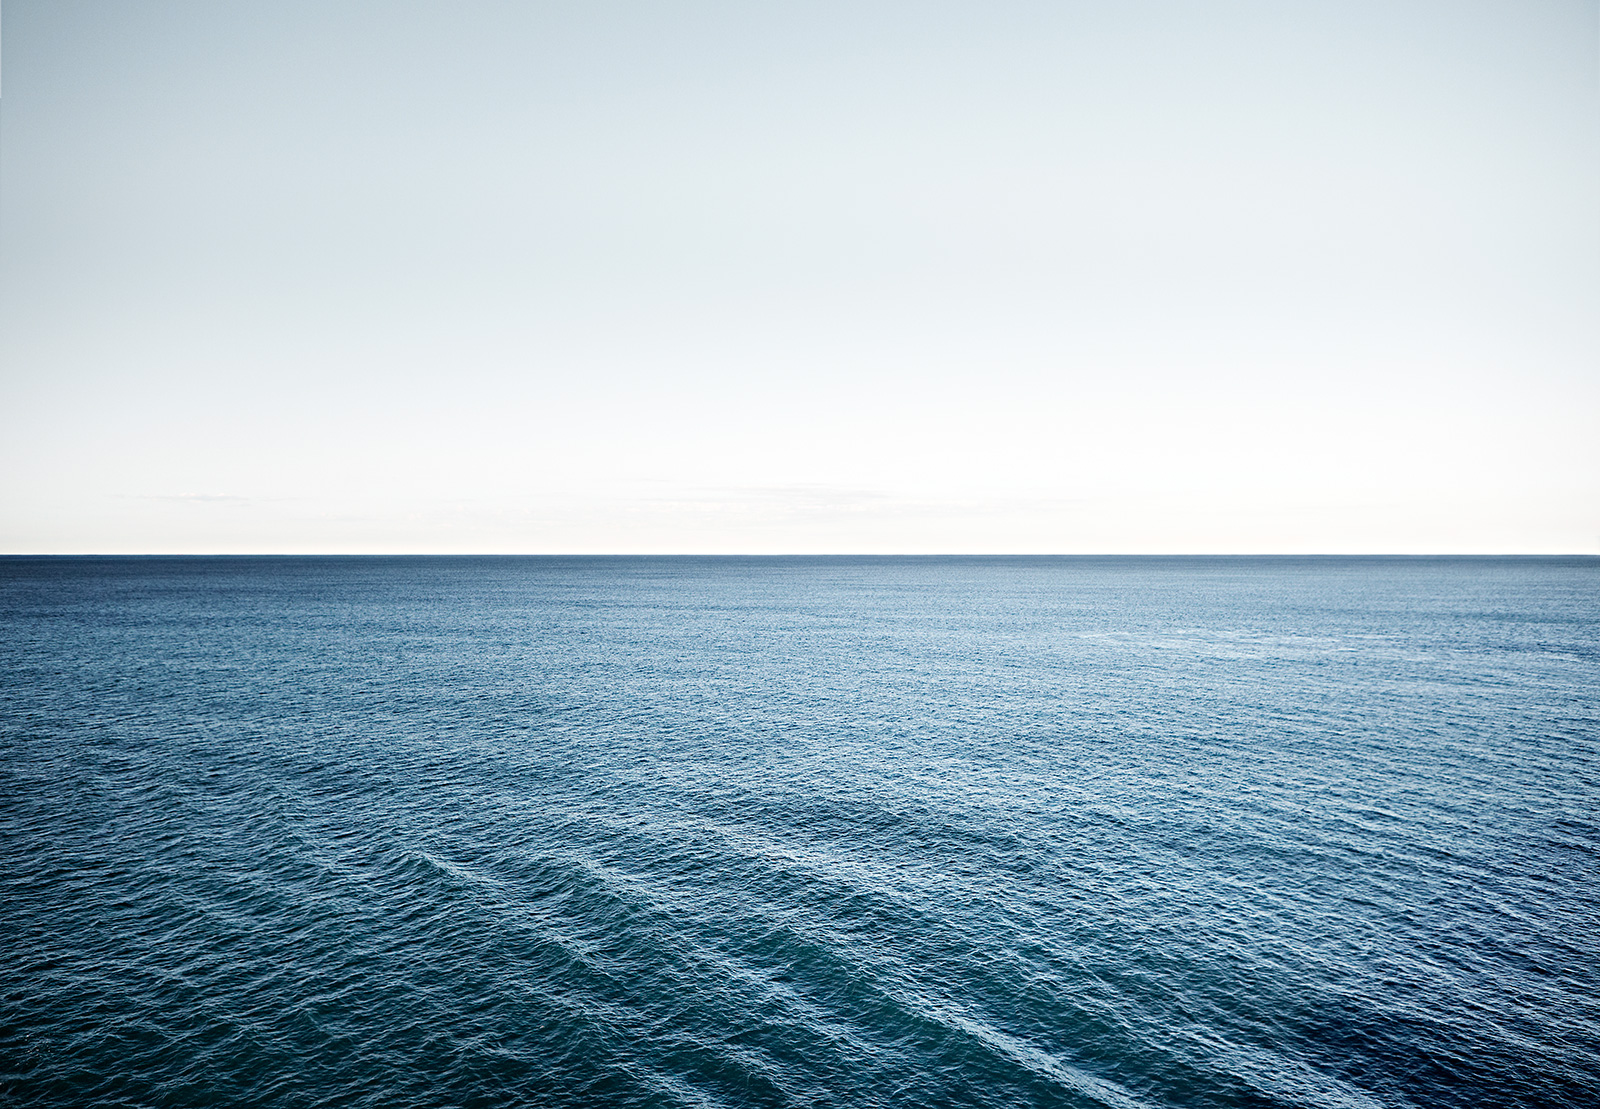 sea #11 by Wolfgang Uhlig